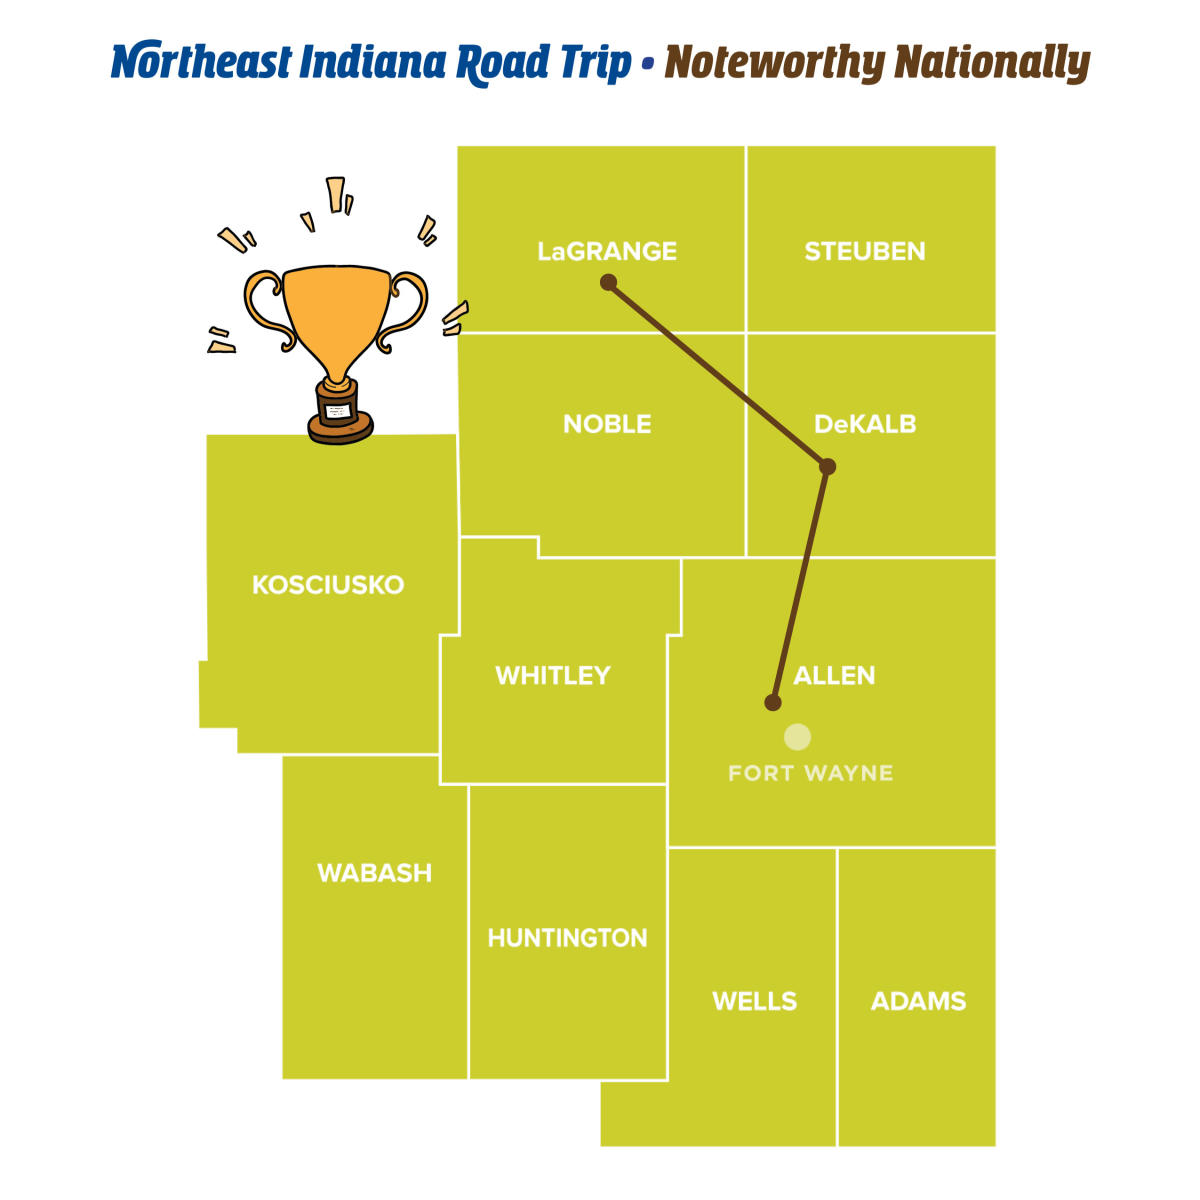 Noteworthy Nationally - Northeast Indiana Road Trips